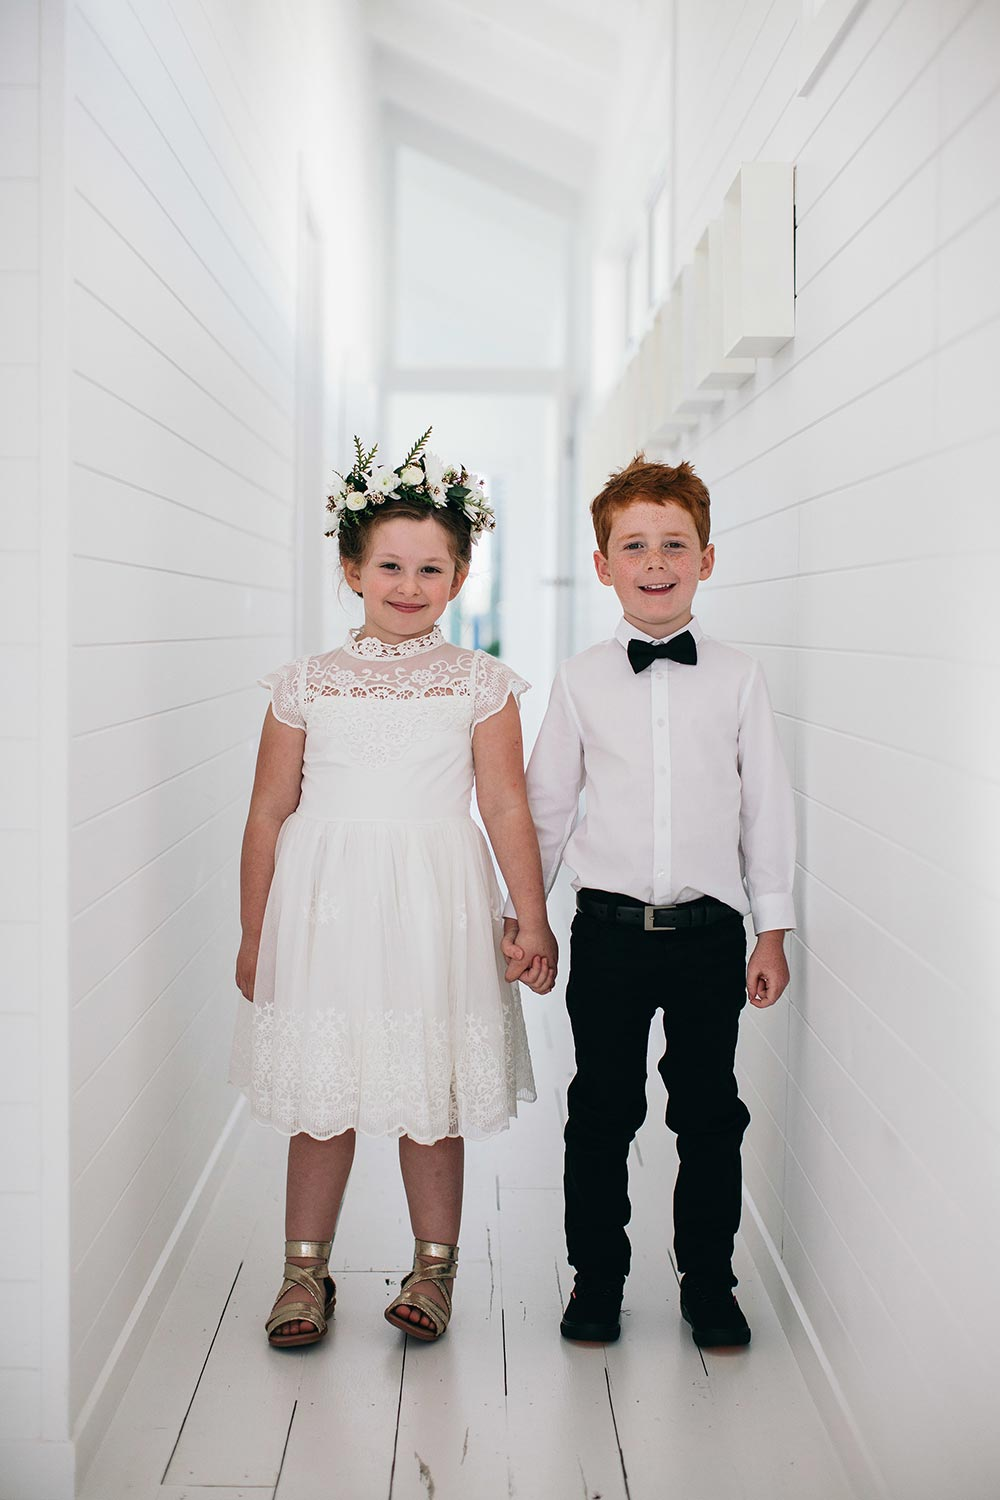 flower girl and ring bearer modern wedding fashion